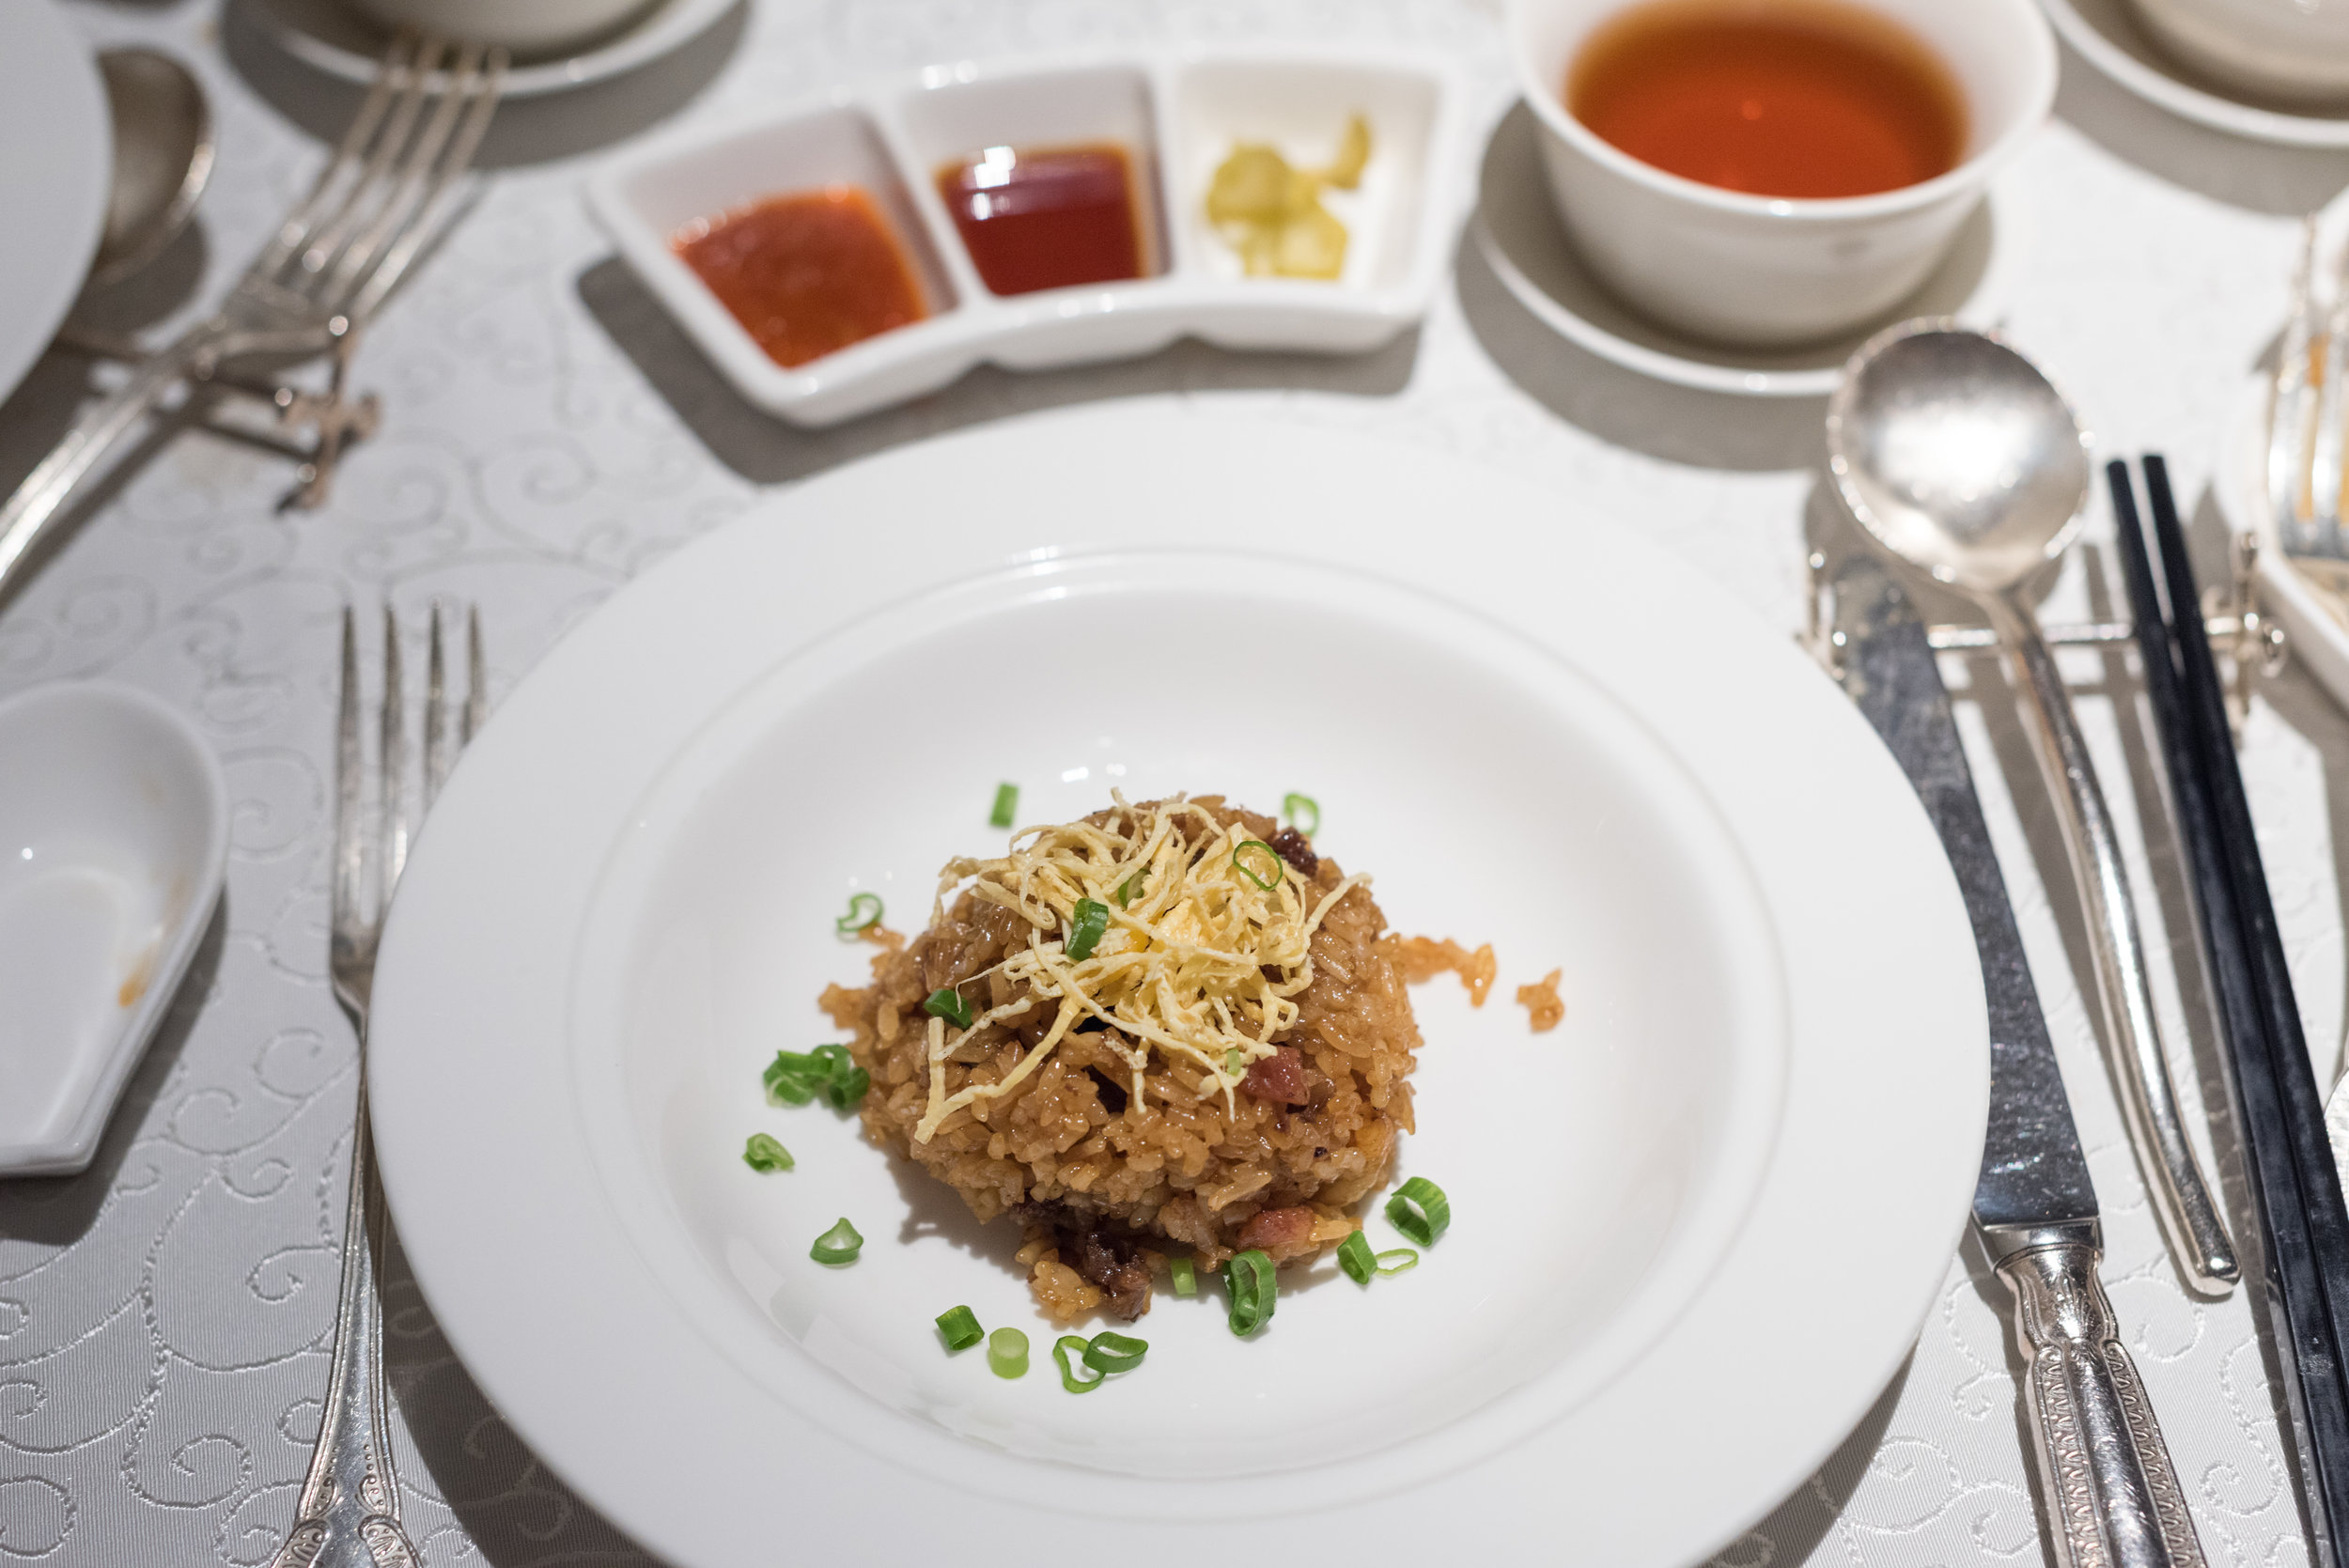 Wok-fried Glutinous Rice with Wind-dried Sausages  Yan Ting - The St. Regis Singapore